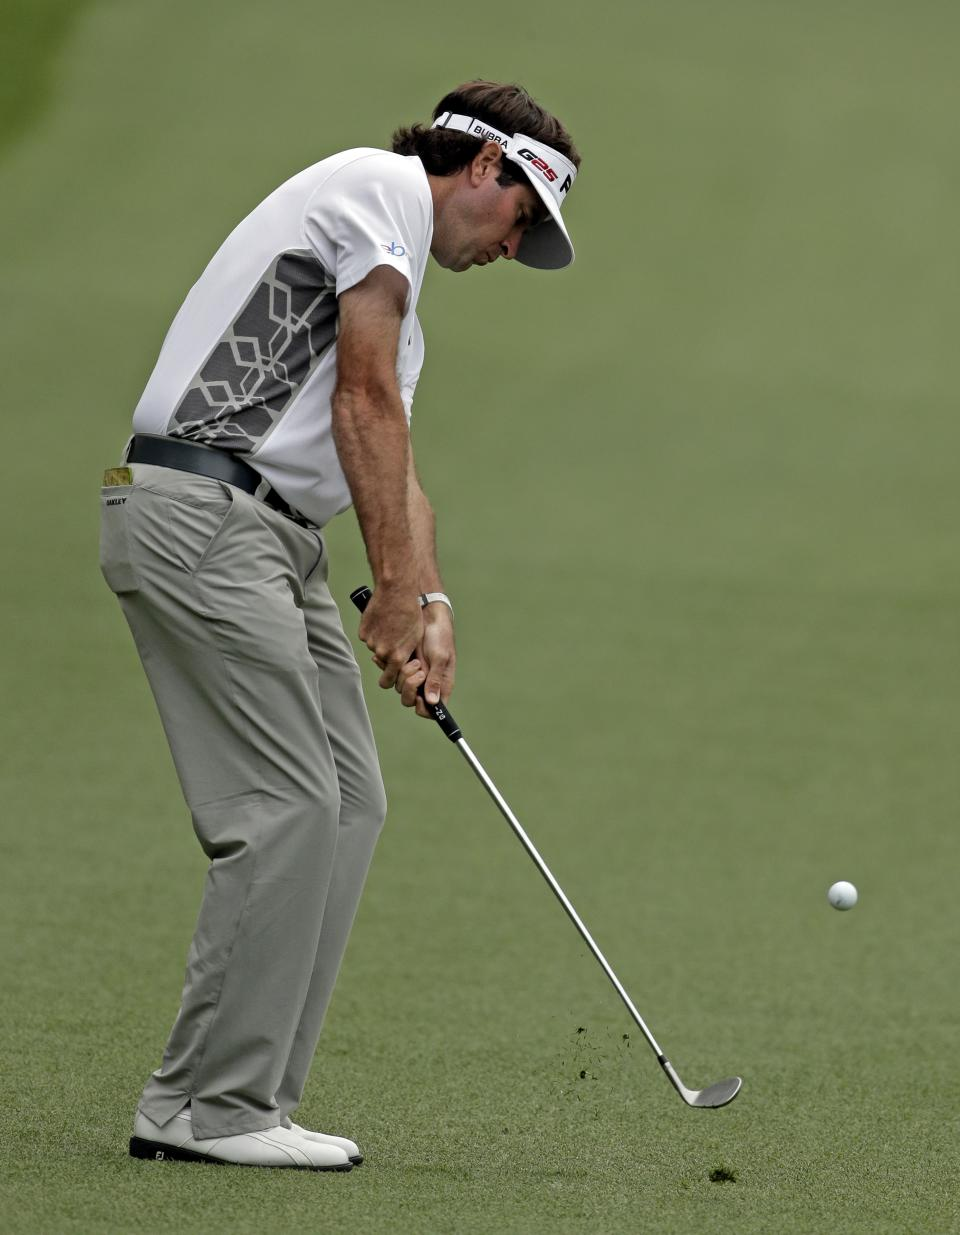 Bubba Watson hits off the first fairway during the fourth round of the Masters golf tournament Sunday, April 14, 2013, in Augusta, Ga. (AP Photo/Charlie Riedel)